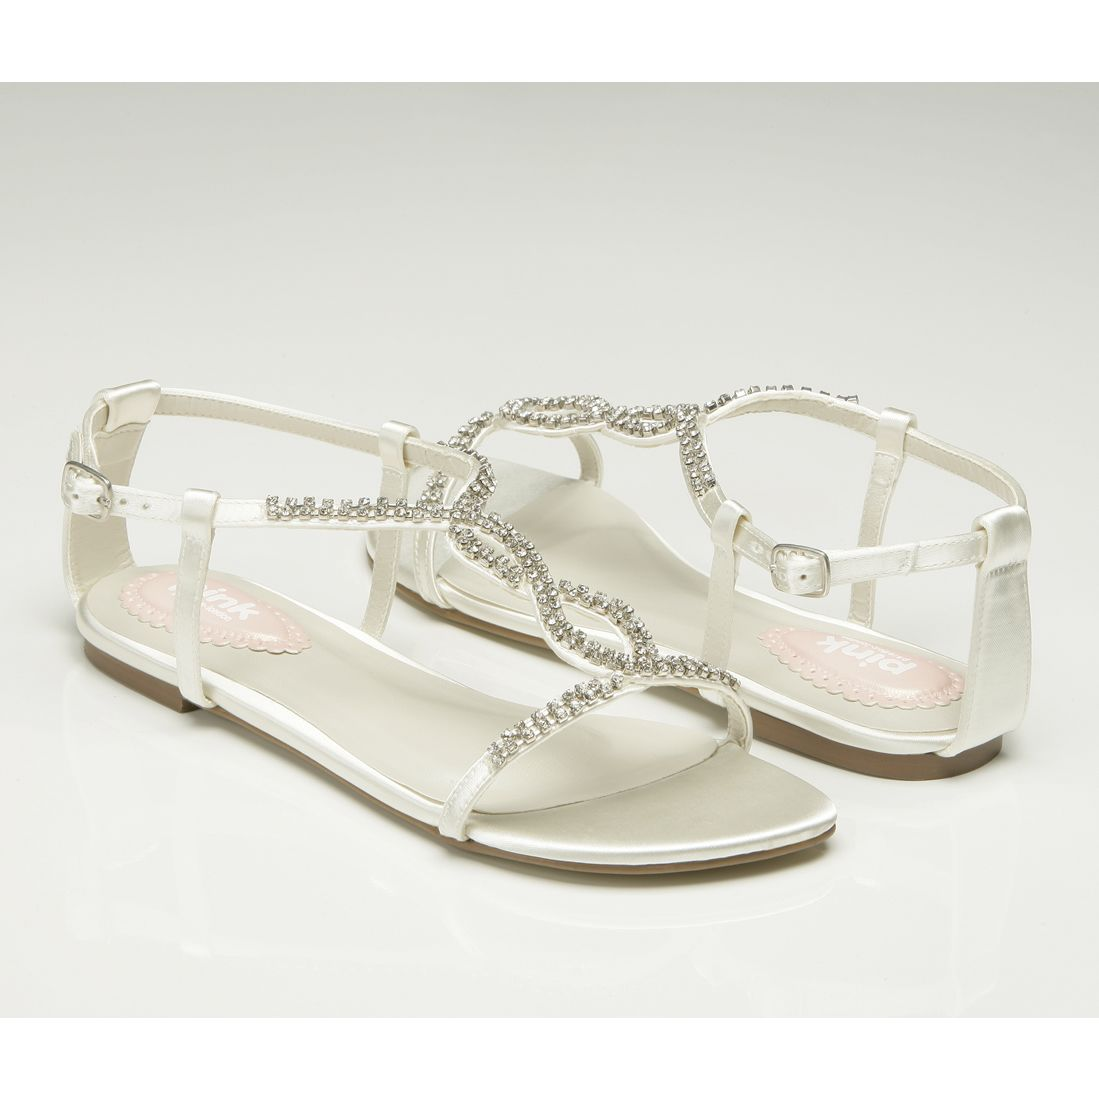 Flat wedding sandals heaven by pink paradox wedding shoes flat wedding sandals heaven by pink paradox wedding shoes crystal bridal accessories junglespirit Gallery